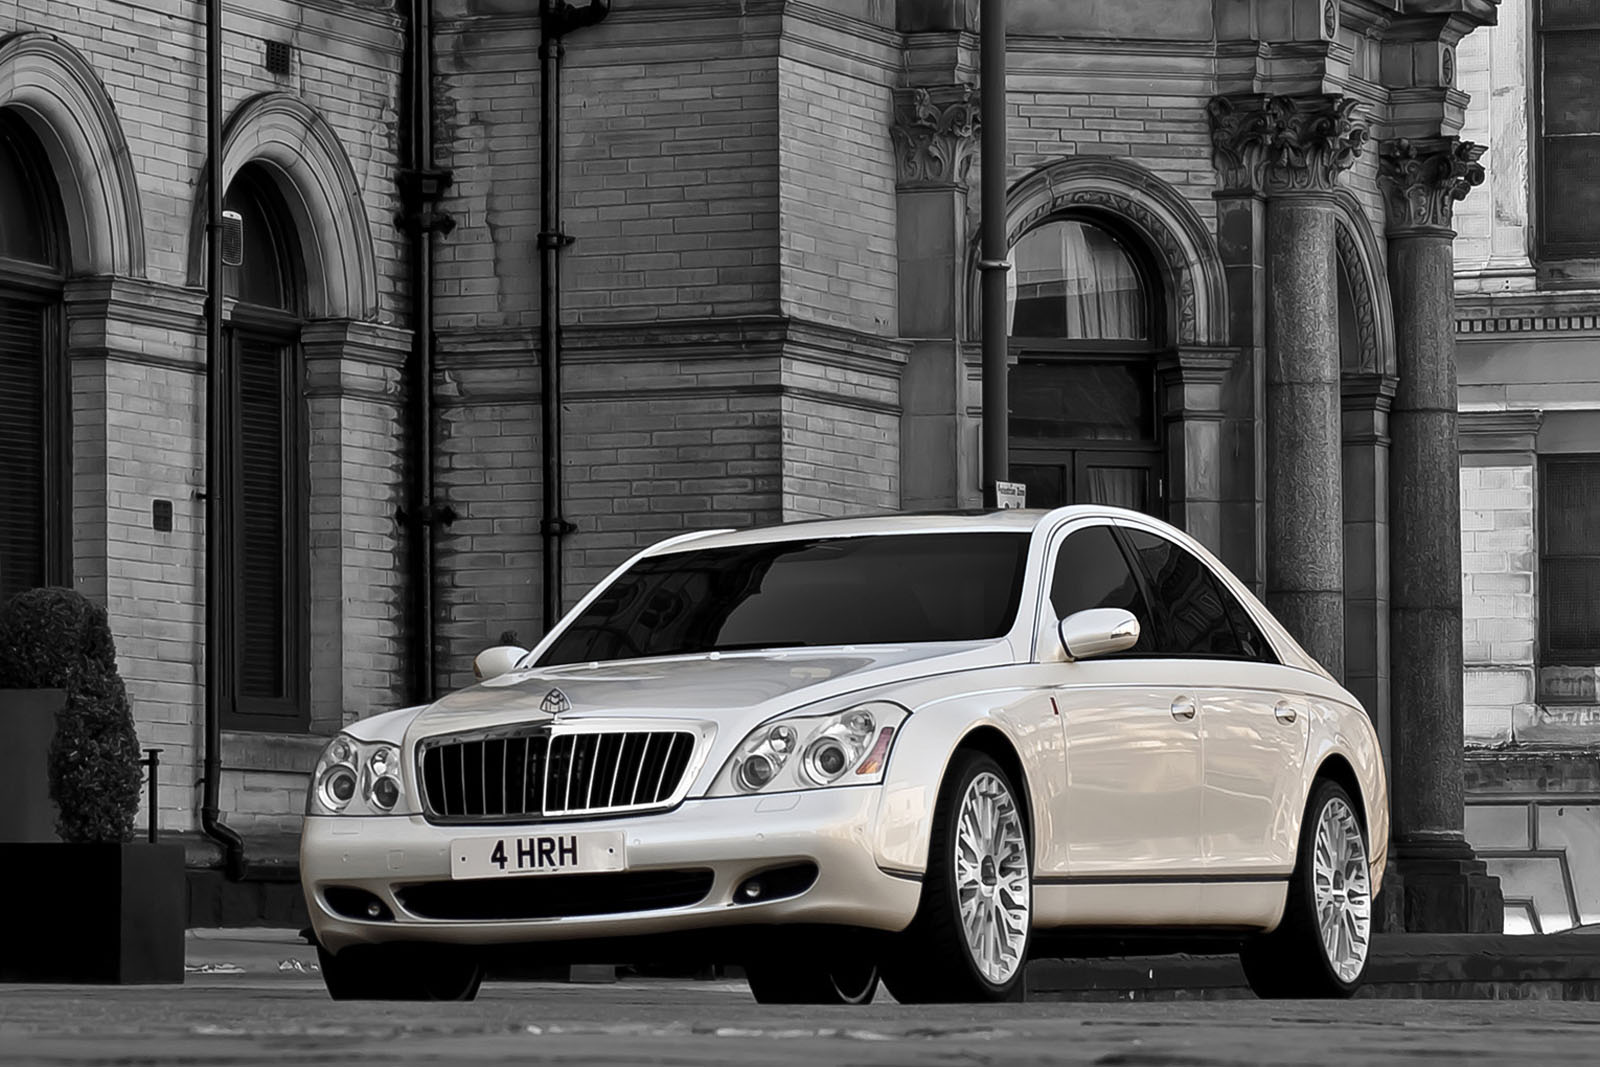 Project Kahn creates a very special Maybach 57 tune